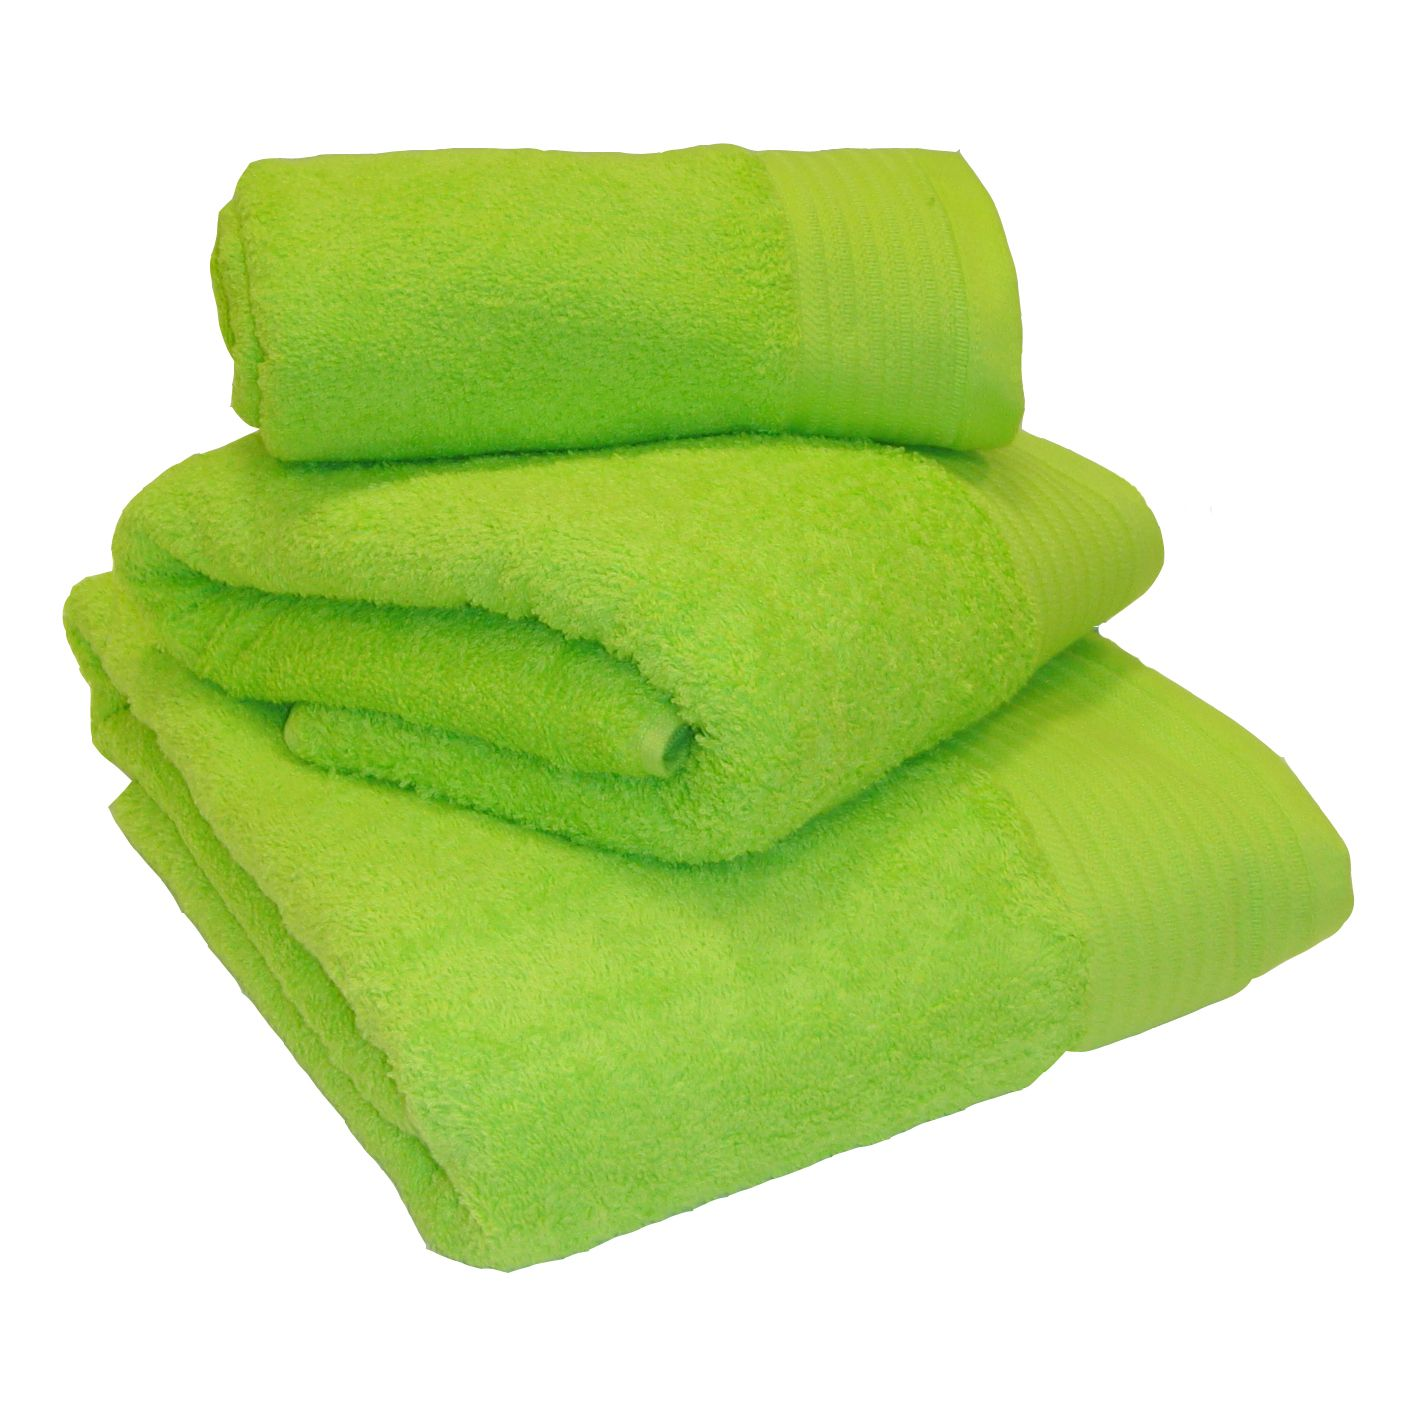 Bathroom Towels And Mats: Lime Green 100% Egyptian Cotton 600gsm Heavyweight Bath